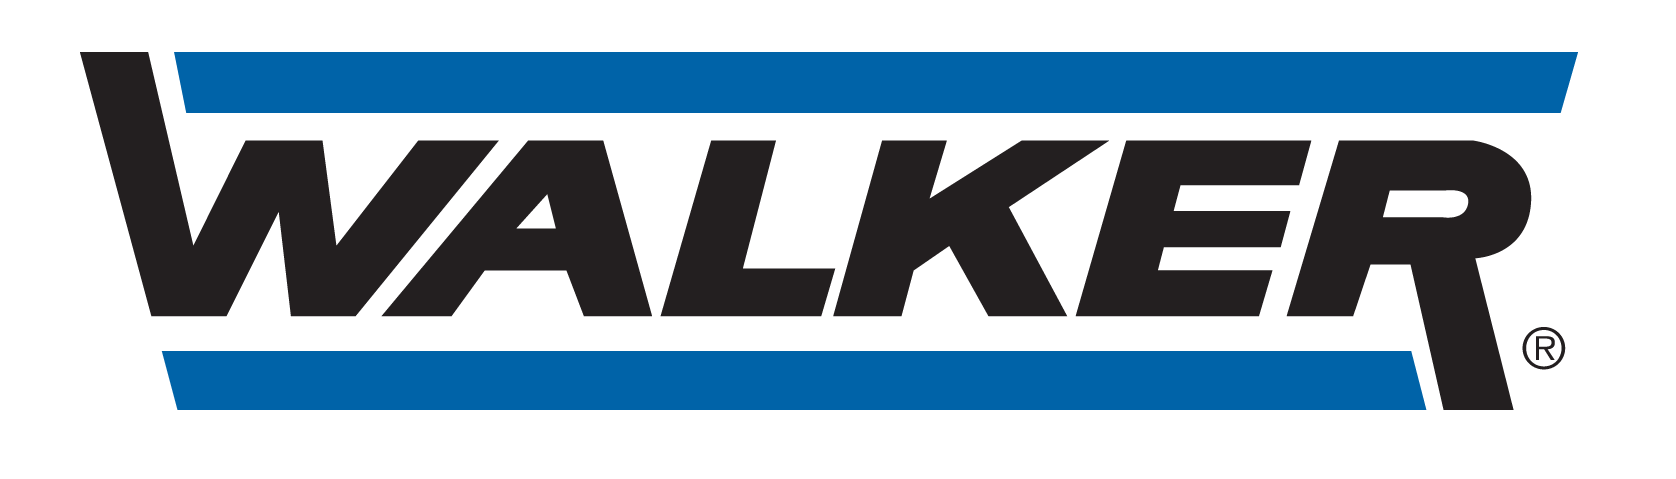 GARAGE LIMOUXIN - logo Walker